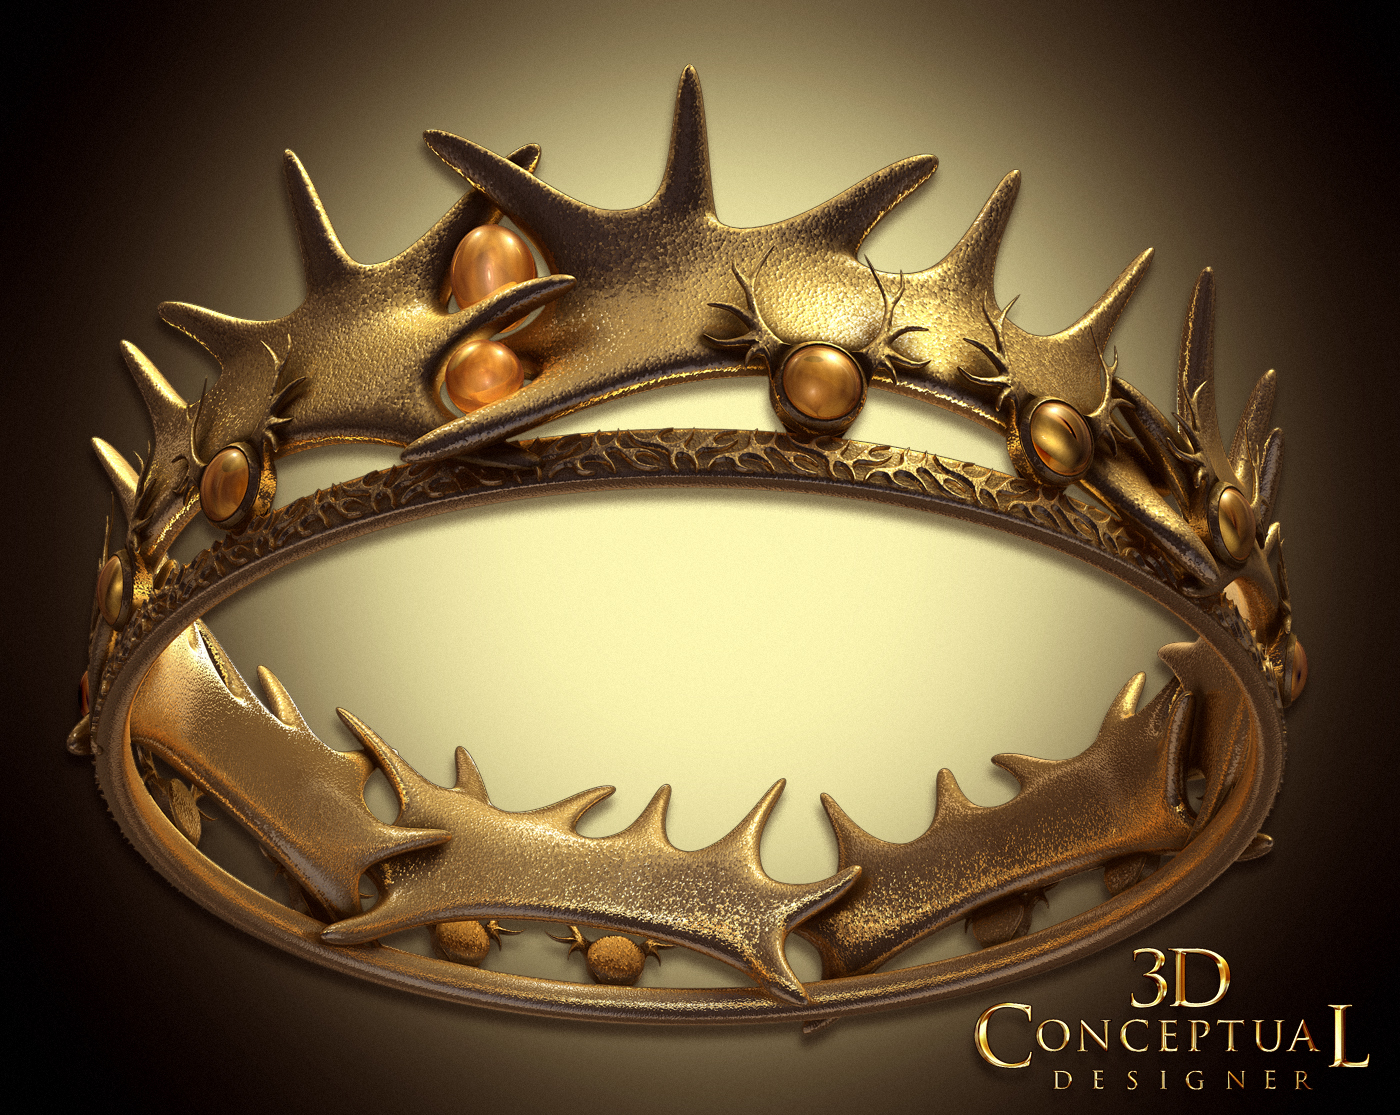 3dconceptualdesignerblog project review game of thrones season 2